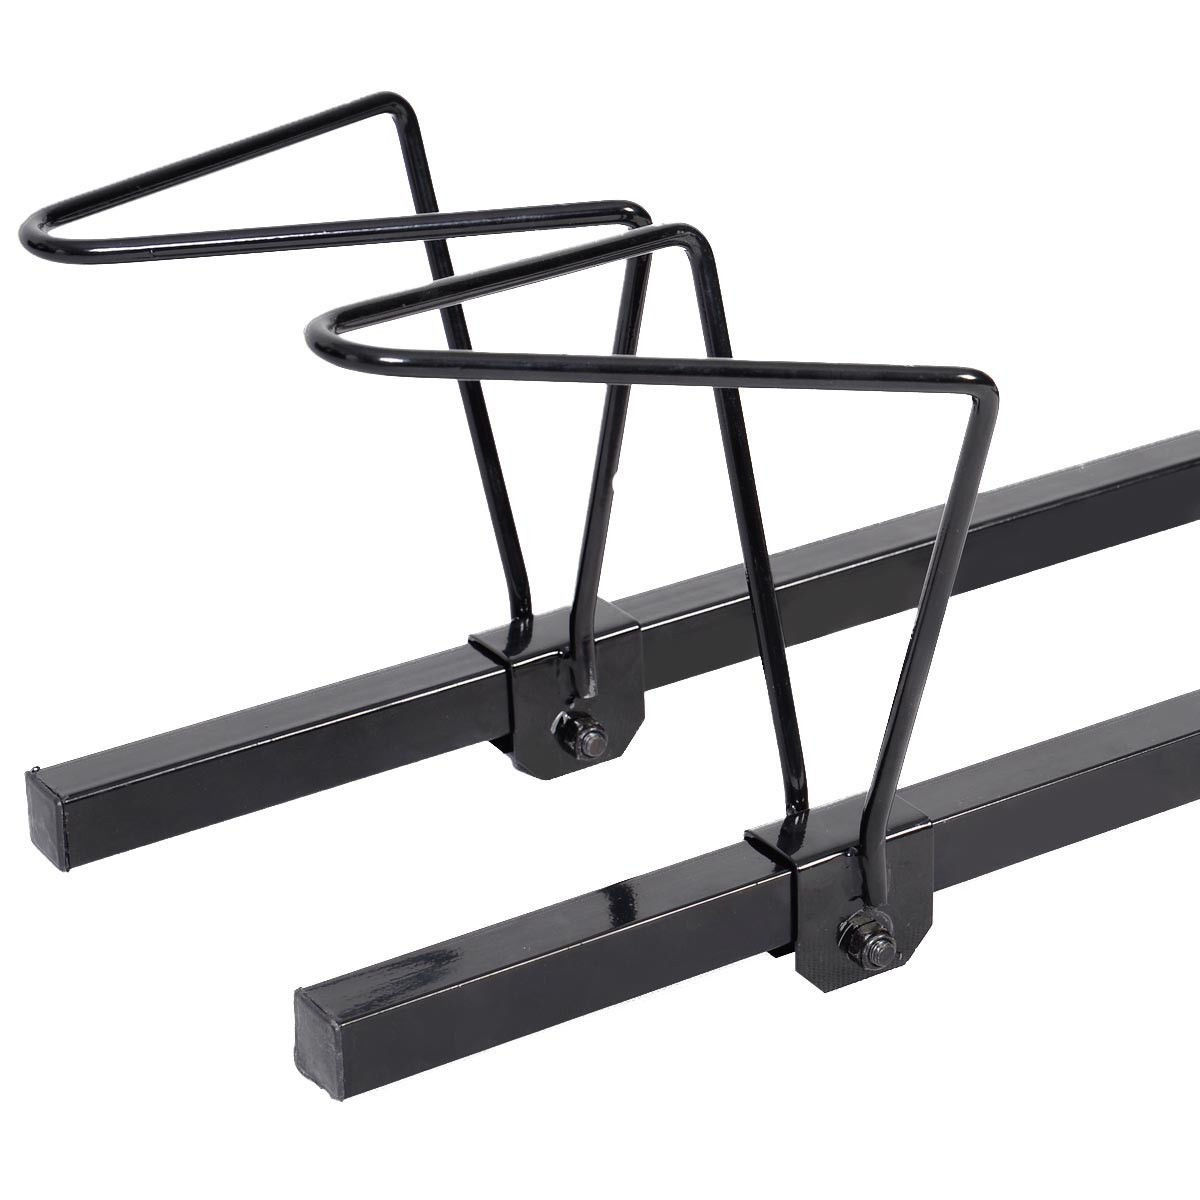 2 Bike Bicycle Hitch Mount 2 Quot Heavy Duty Carrier Platform